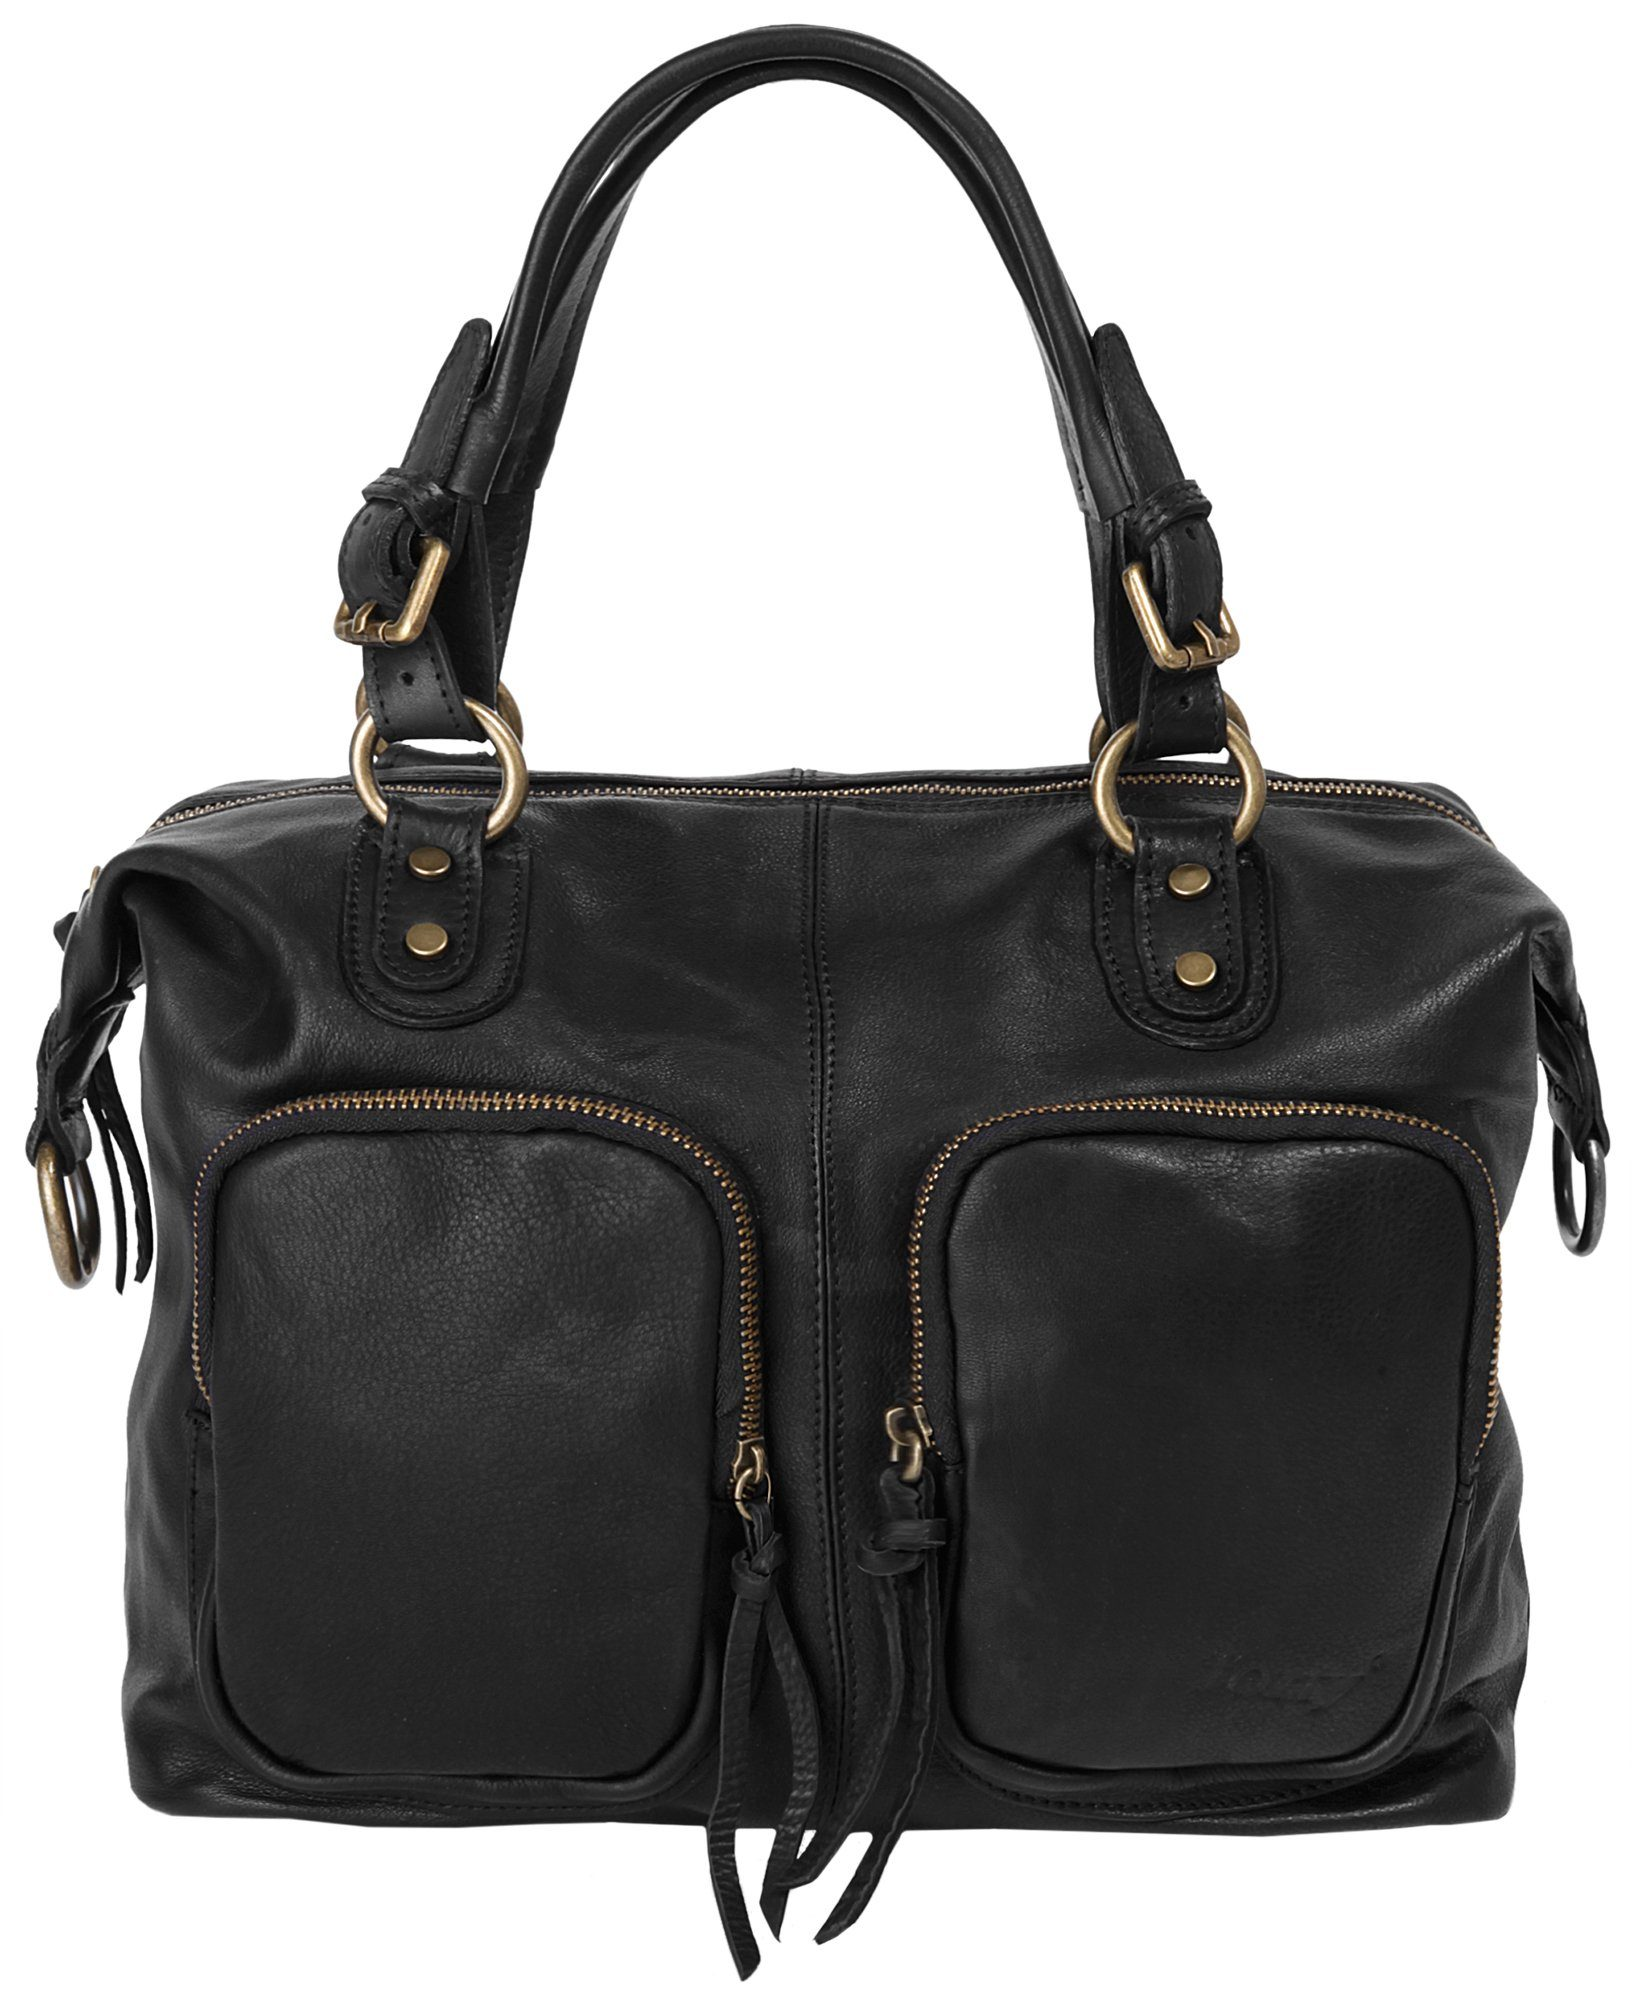 Forty degrees Handtasche